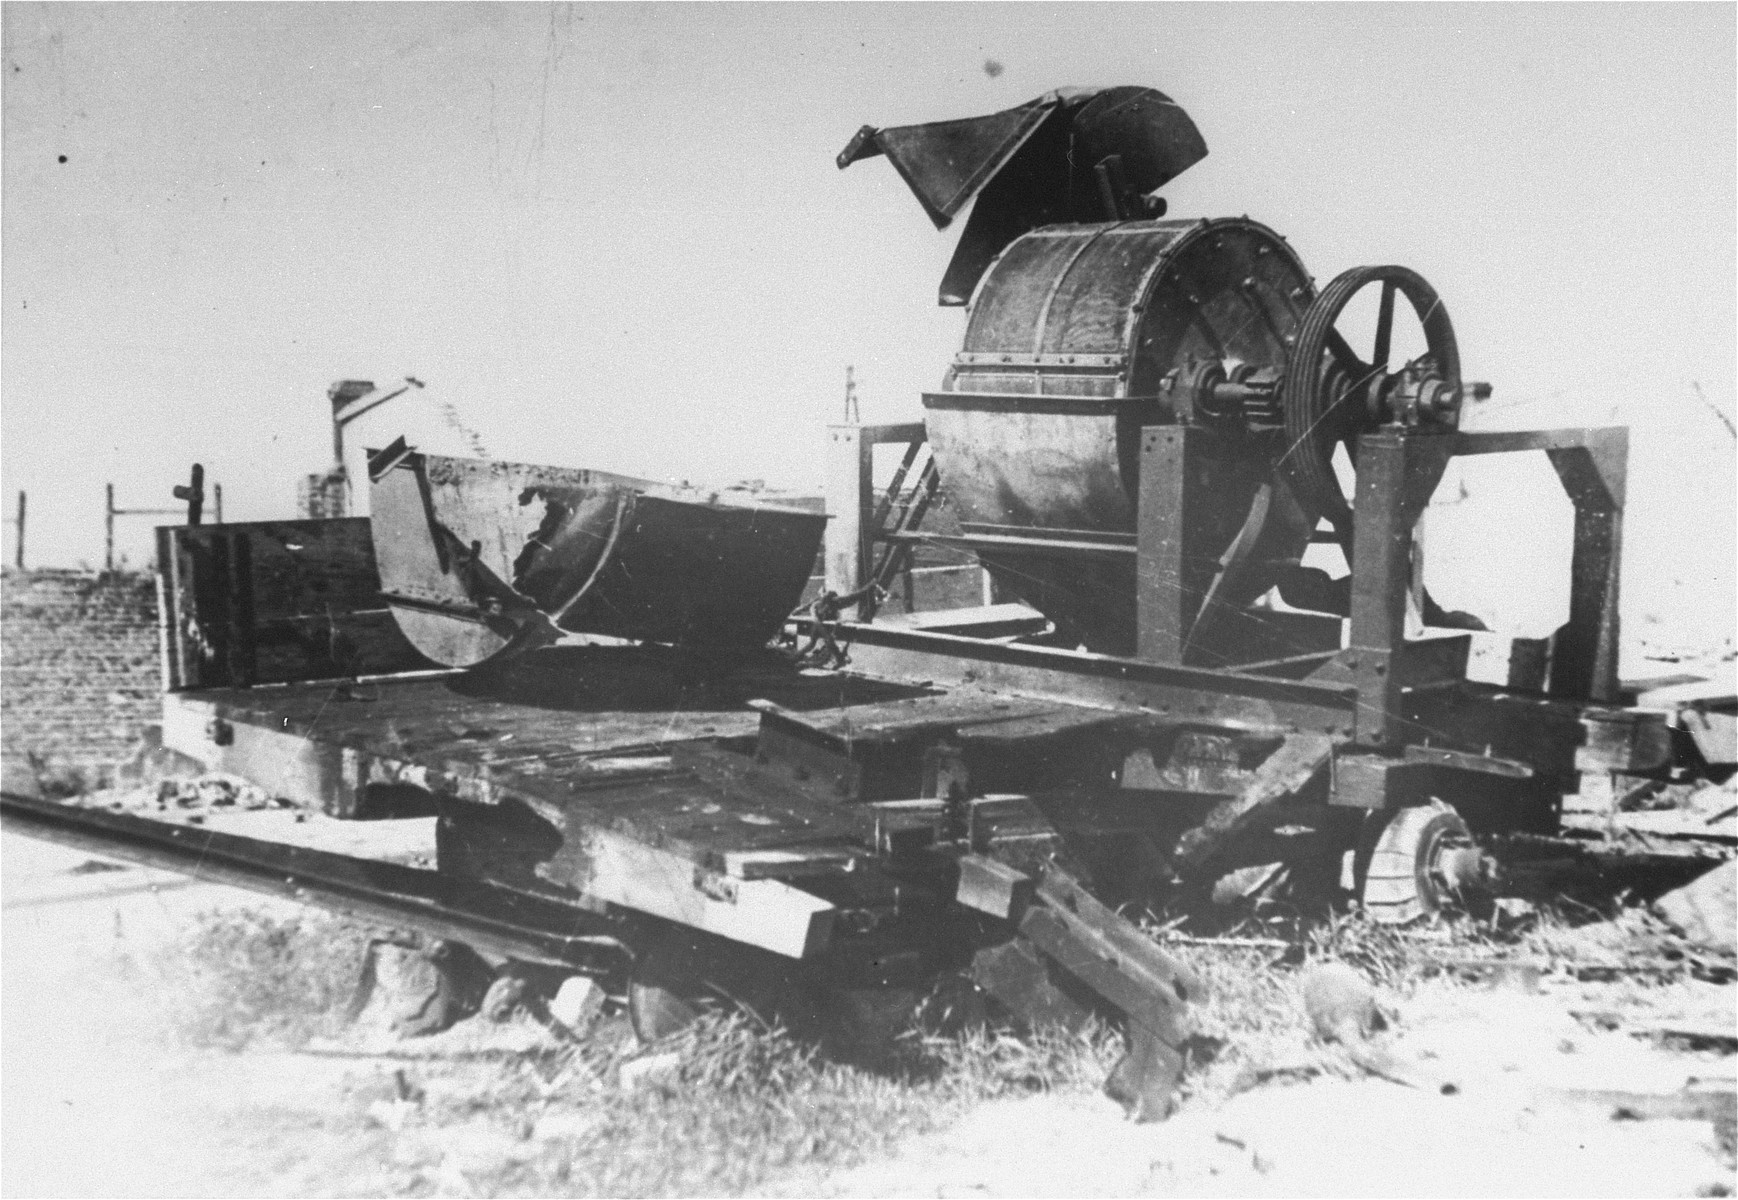 "View of the bone crushing machine used by Sonderkommando 1005 in the Janowska concentration camp to grind the bones of victims after their bodies were burned.    The photo was taken by members of a Soviet war crimes commission soon after the liberation.  Original caption reads, ""To illustrate the communique of the Extraordinary State Committee on the crimes committed by the Germans on the territory of the Lvov region.  In the camps of the Lvov Region the Germans exterminated hundreds of thousands of Soviet citizens, war-prisoners and nationals of foreign states.  A German machine for crushing the bones of their burned victims."""